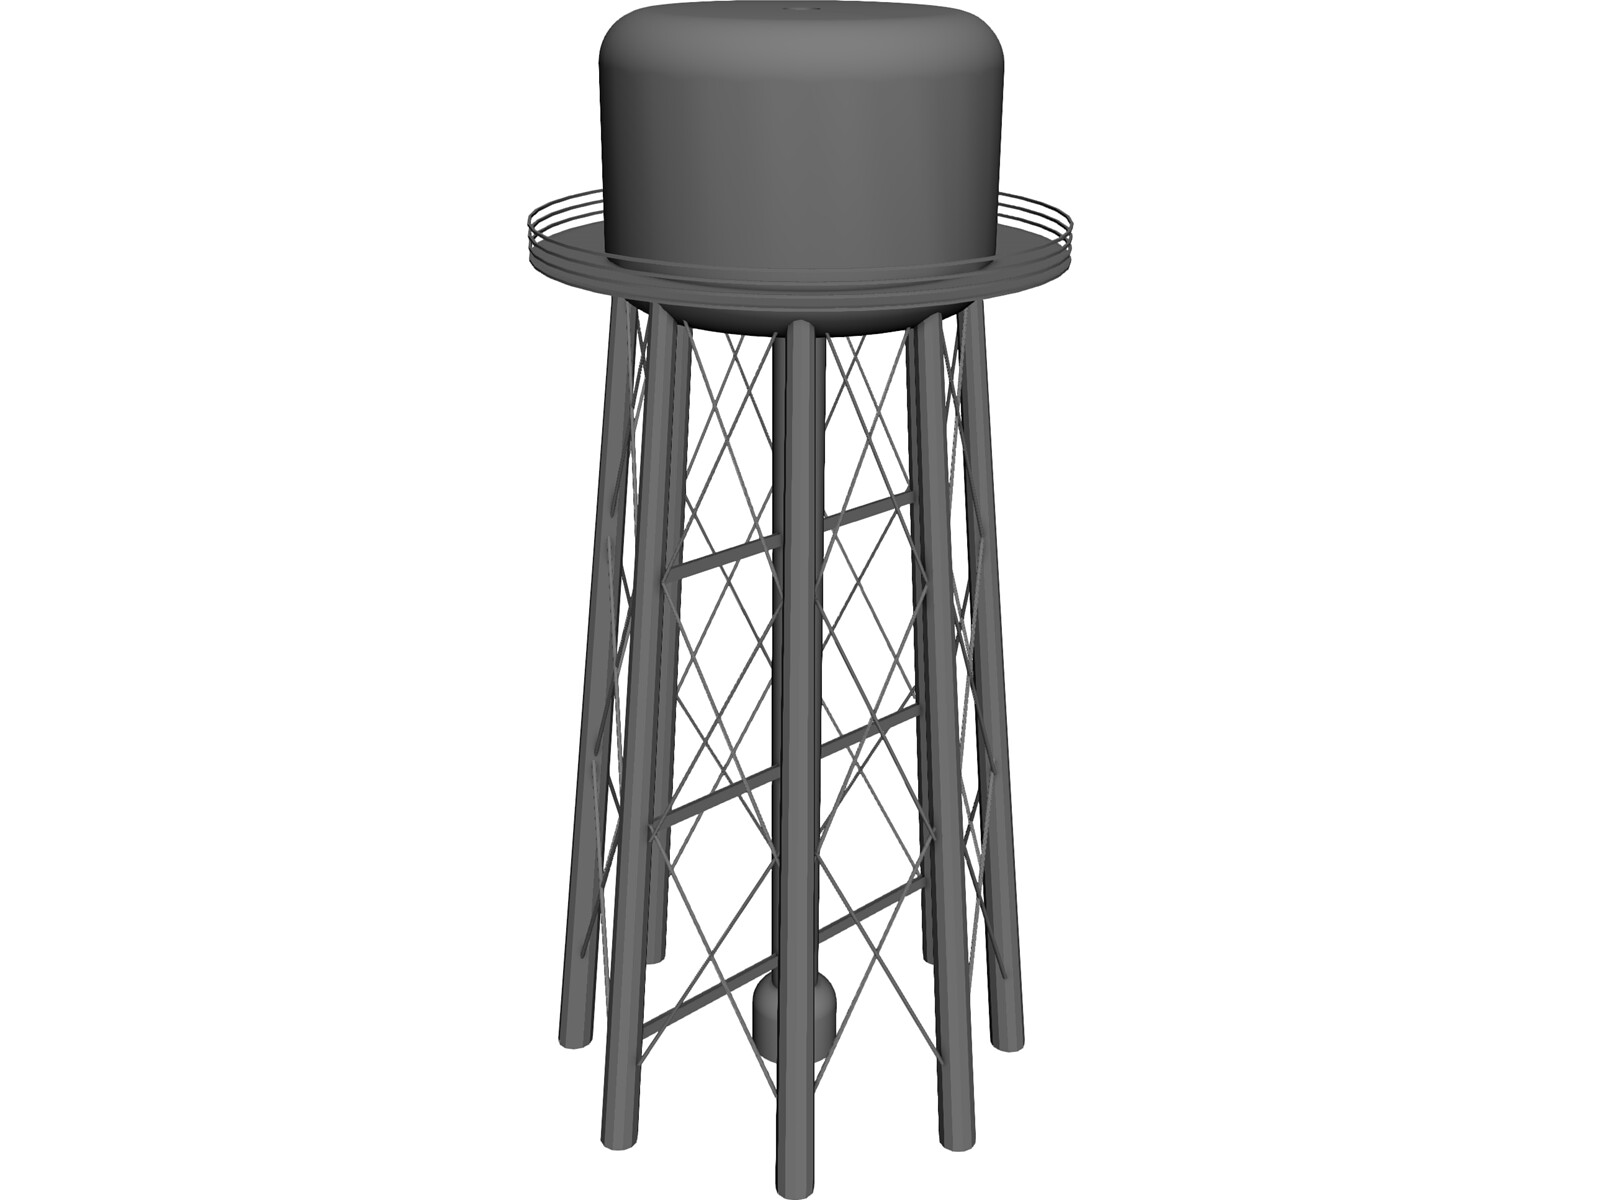 Model Water Tower Water Tower 3d Model